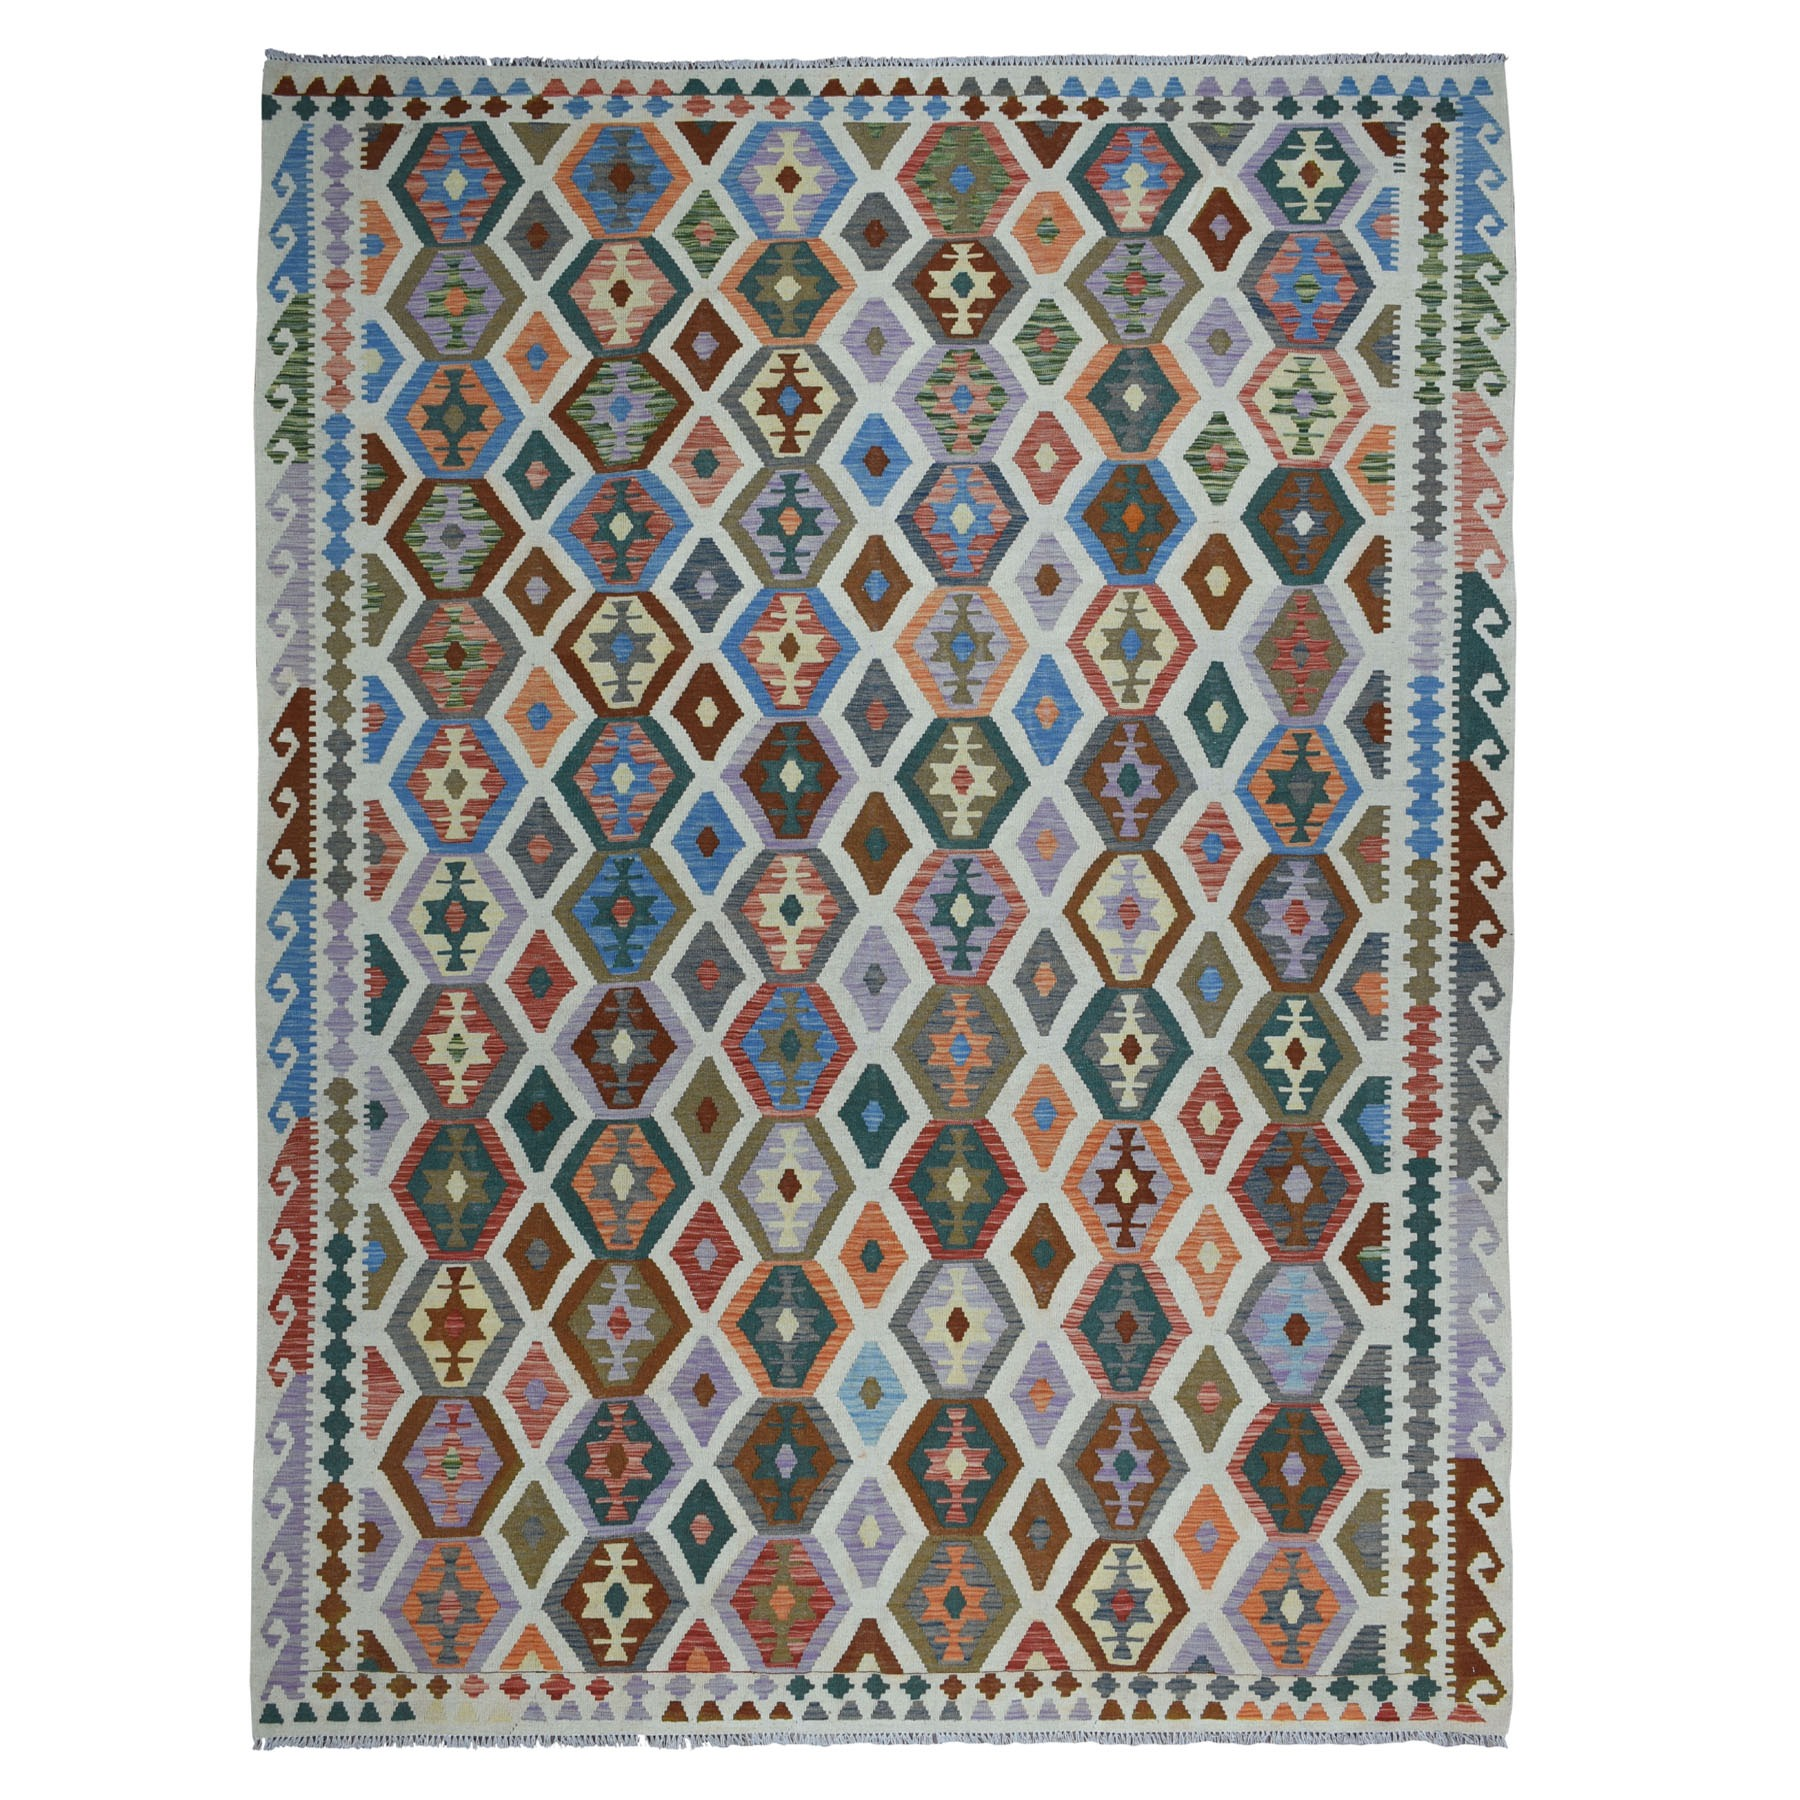 Fine Kilim Collection Hand Woven Multicolored Rug No: 1104442